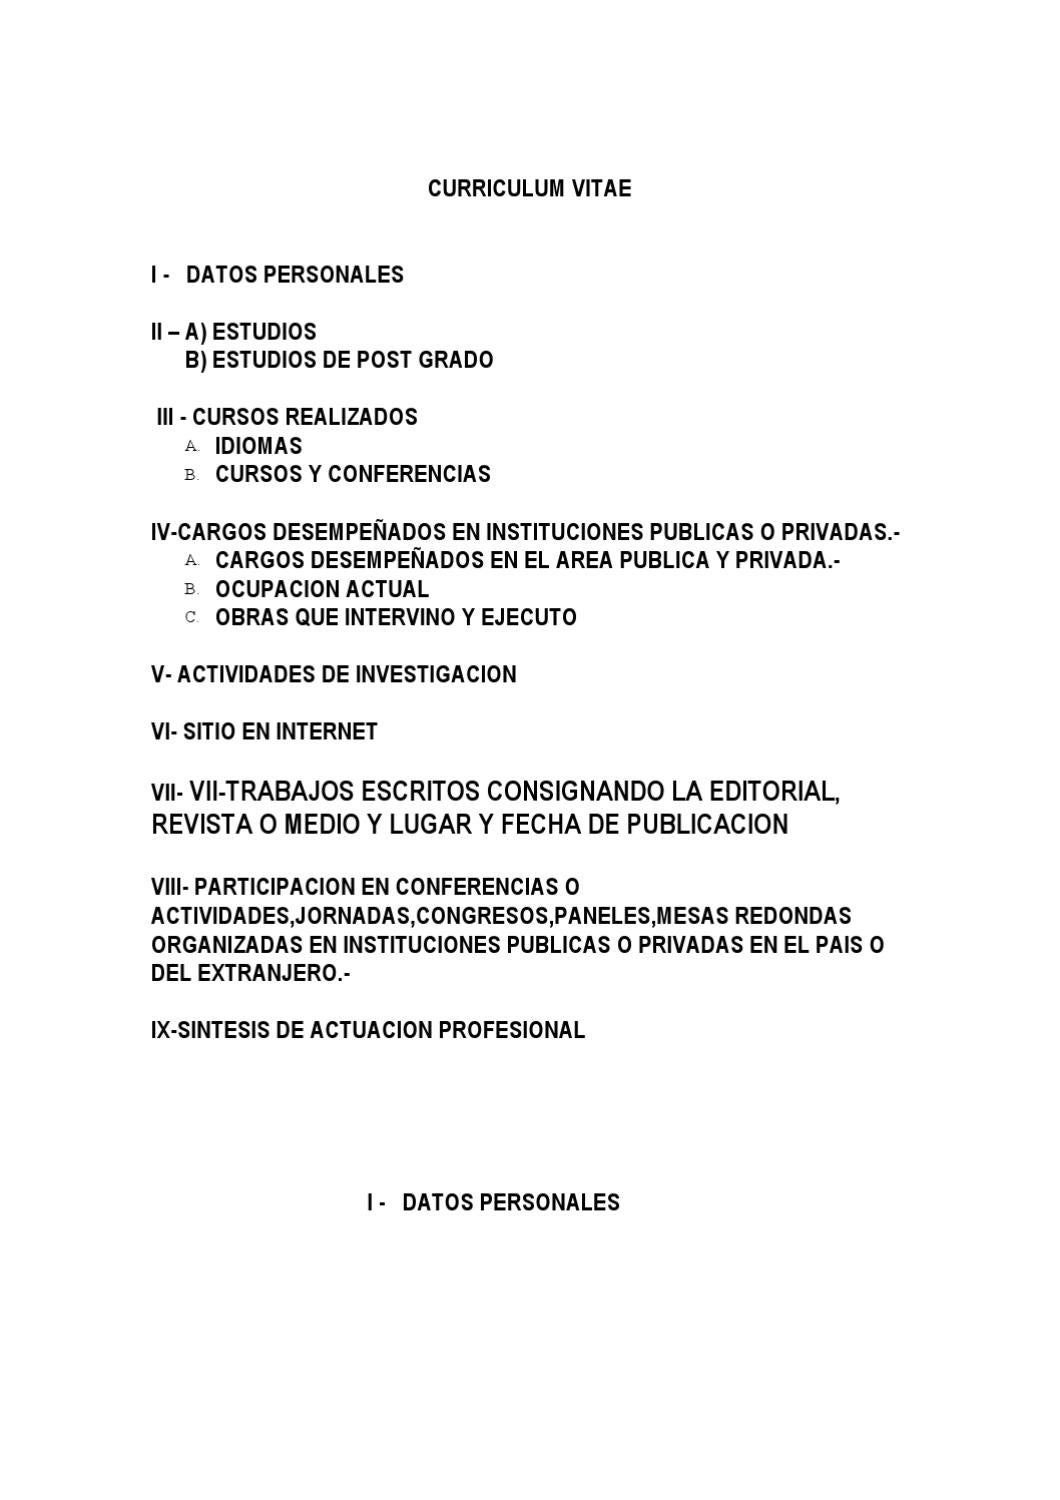 1.1CURRICULUMVITAE prof.ing.BARRETO by oscar barreto - issuu